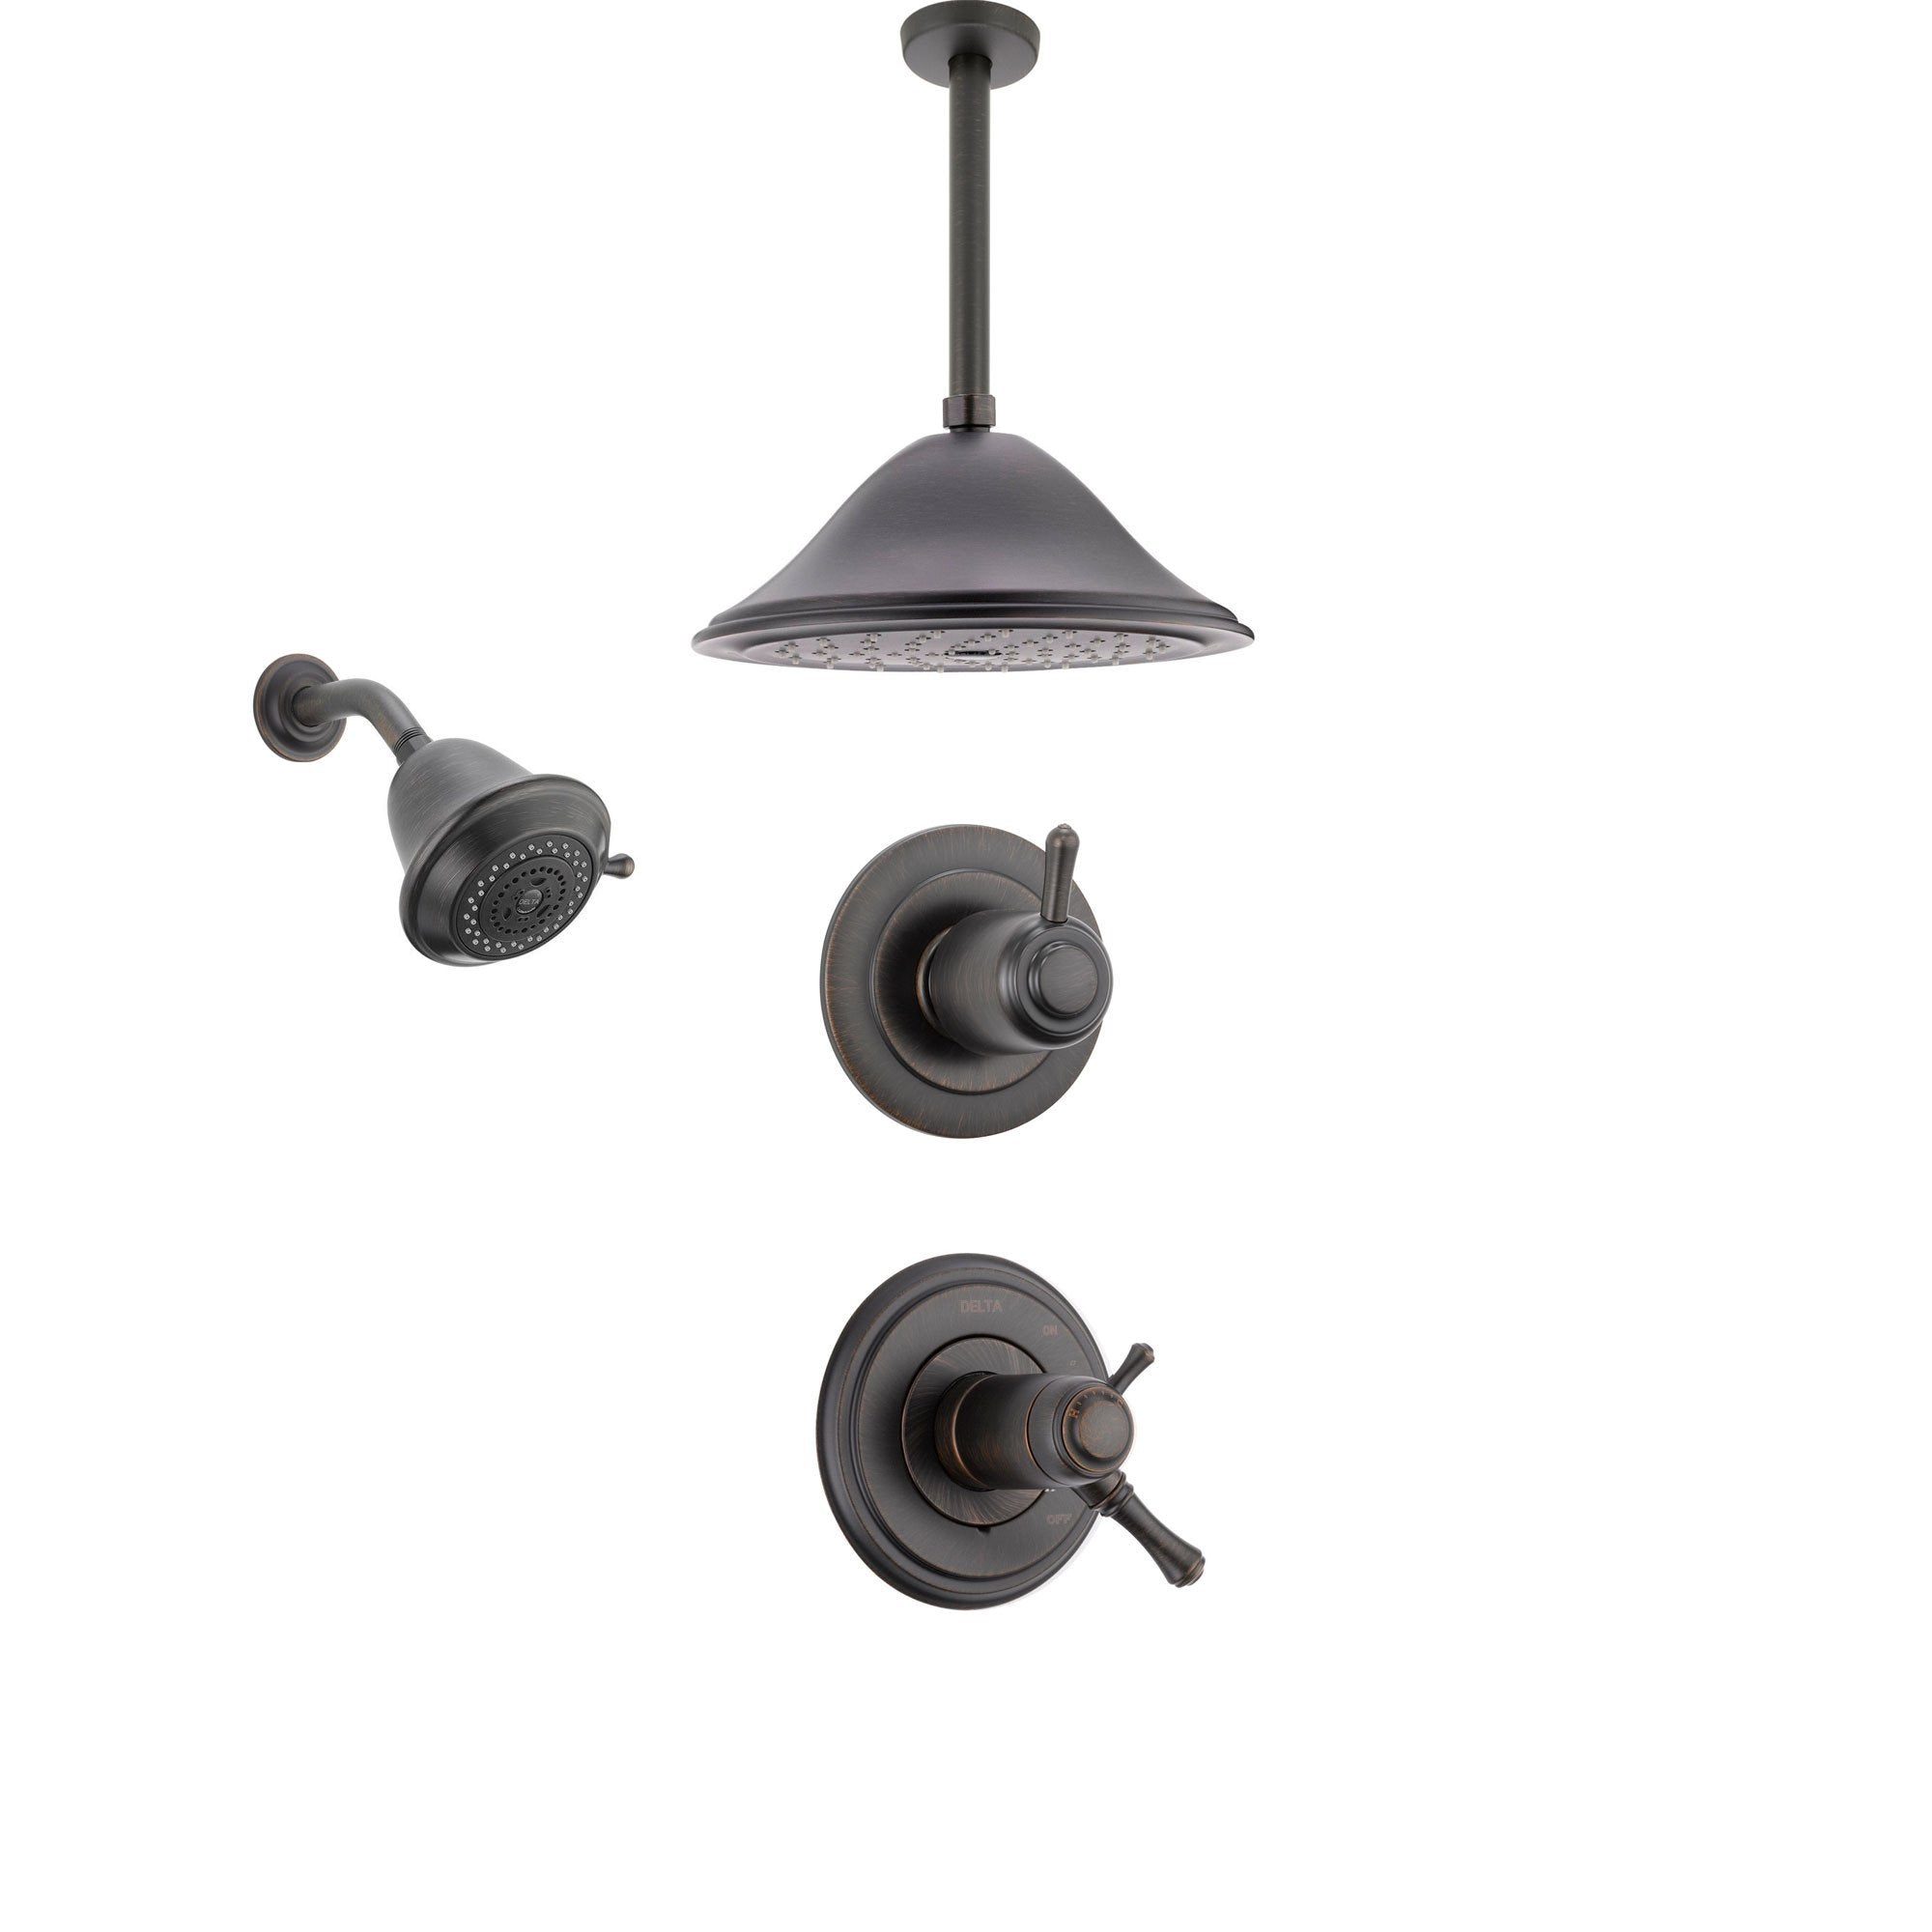 Delta Cassidy Venetian Bronze Shower System with Thermostatic Shower Handle, 3-setting Diverter, Large Rain Ceiling Mount Shower Head and Wall Mount Showerhead SS17T9783RB